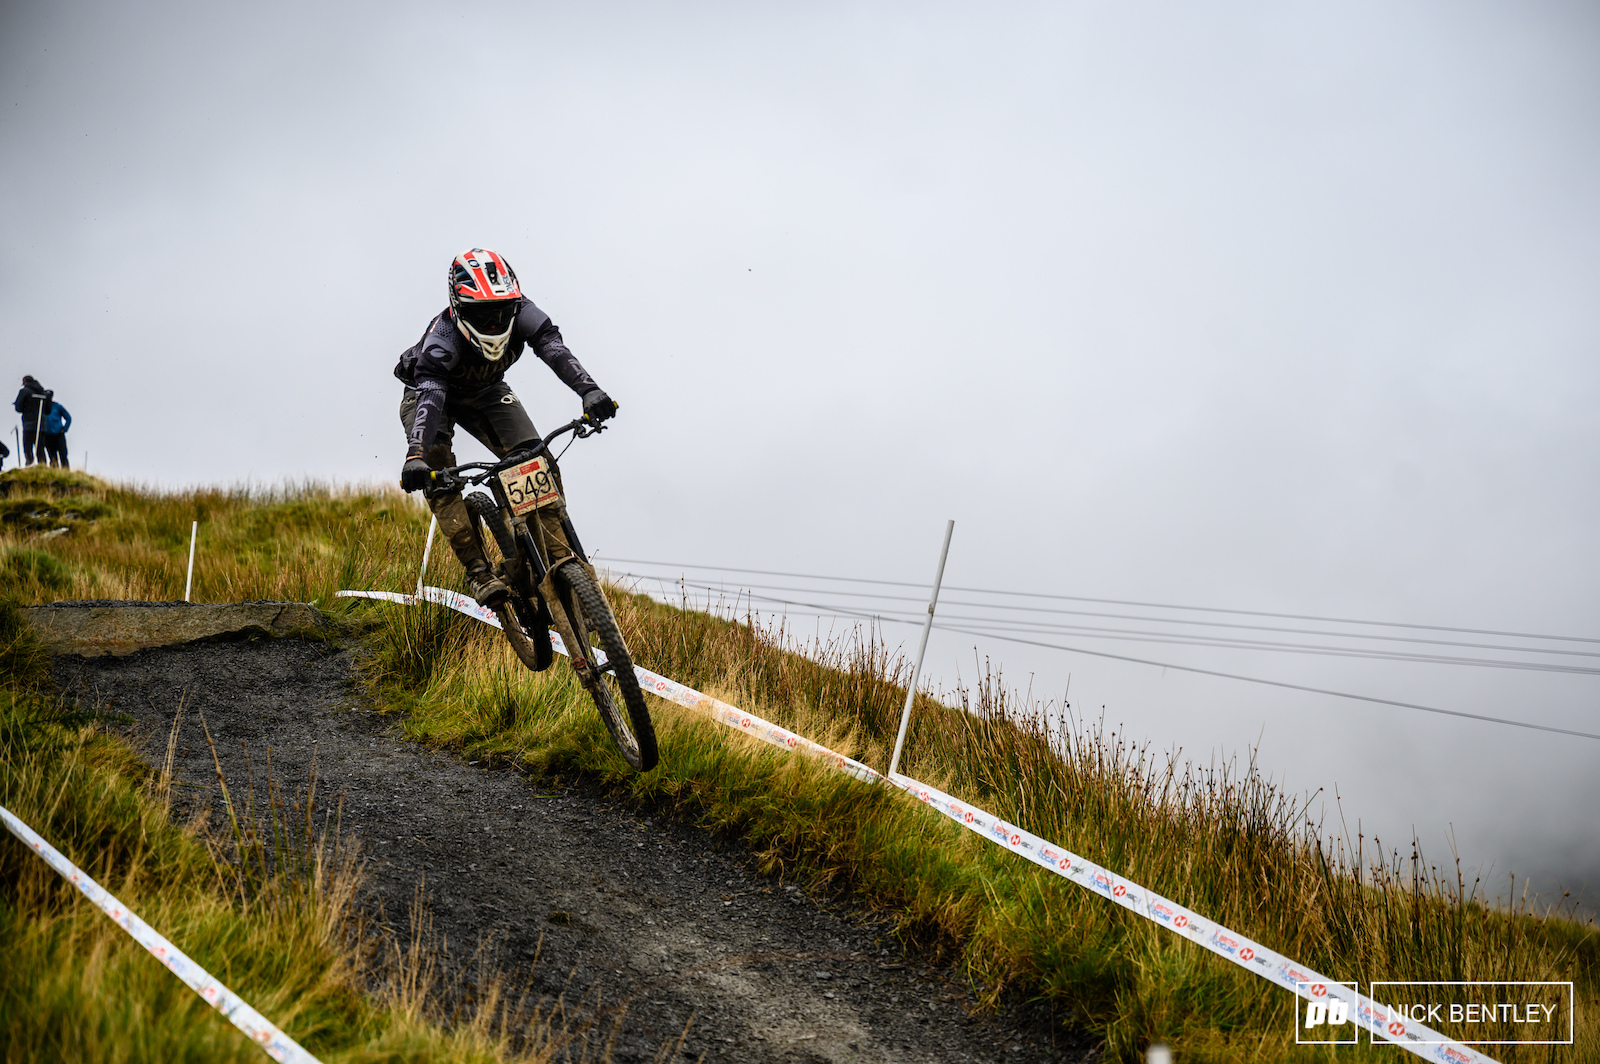 Archie Casson having some fun on the upper section of the track